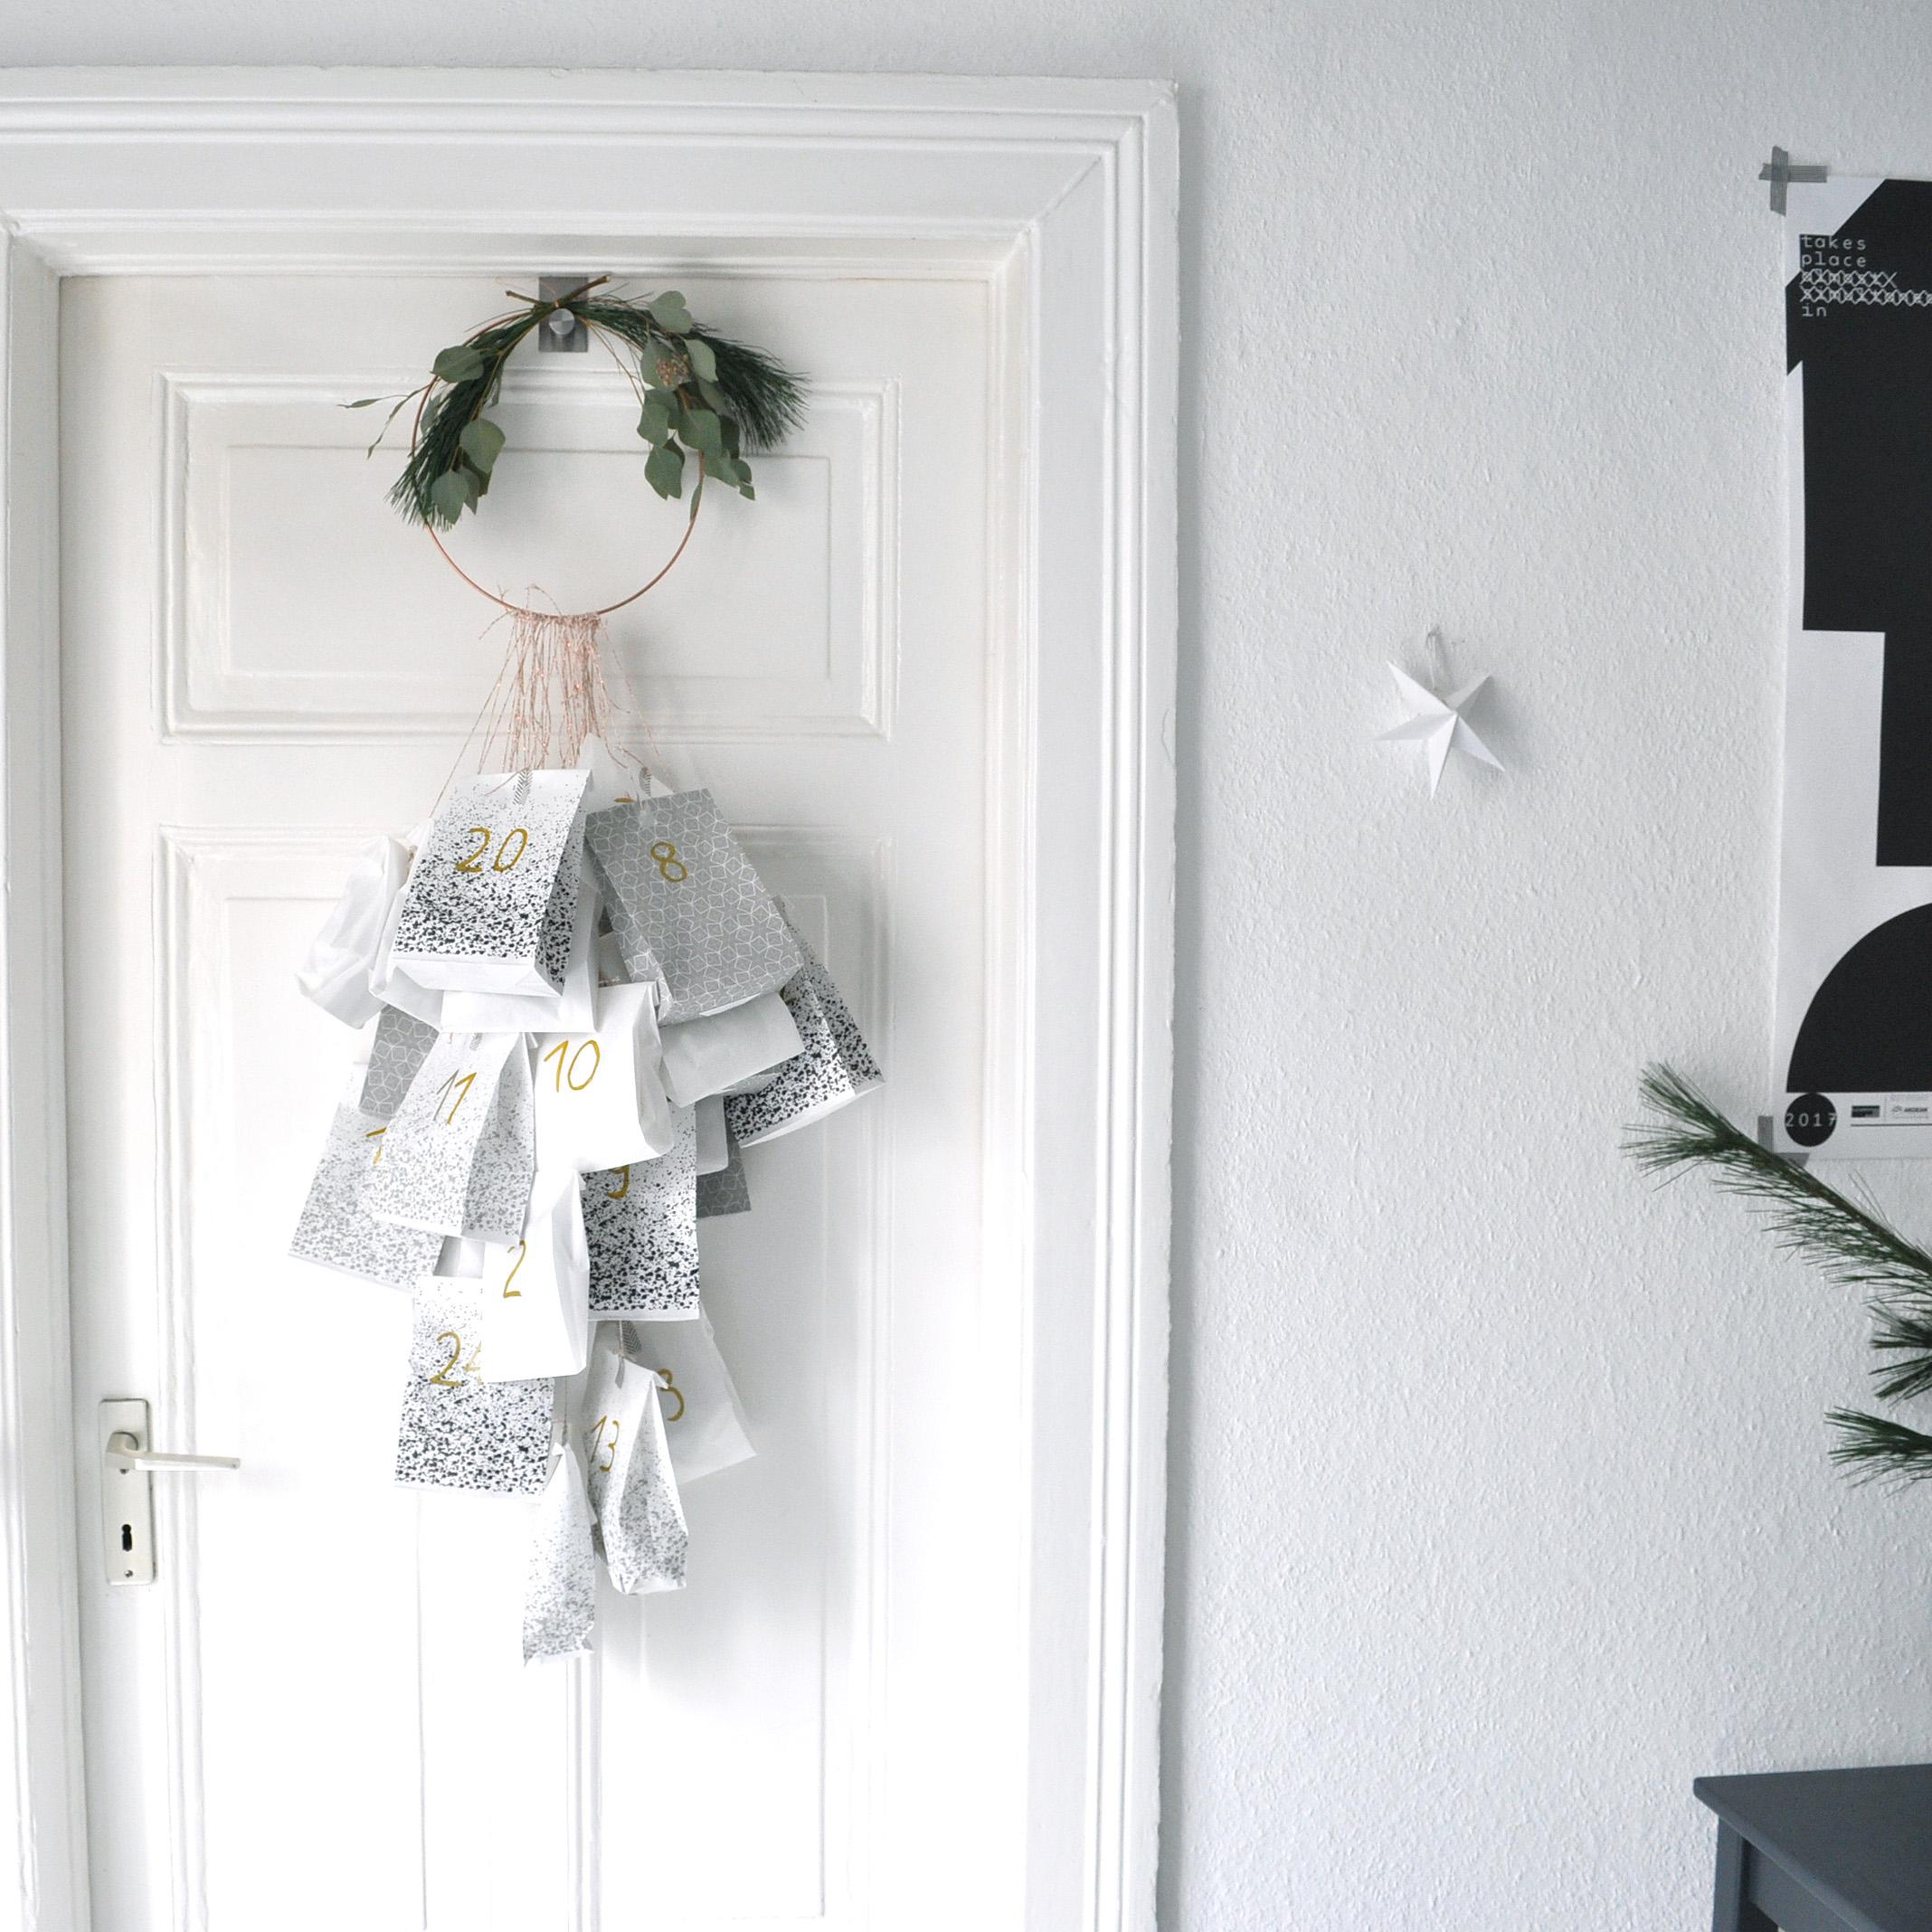 #adventskalender #diy #blackandwhite #interior